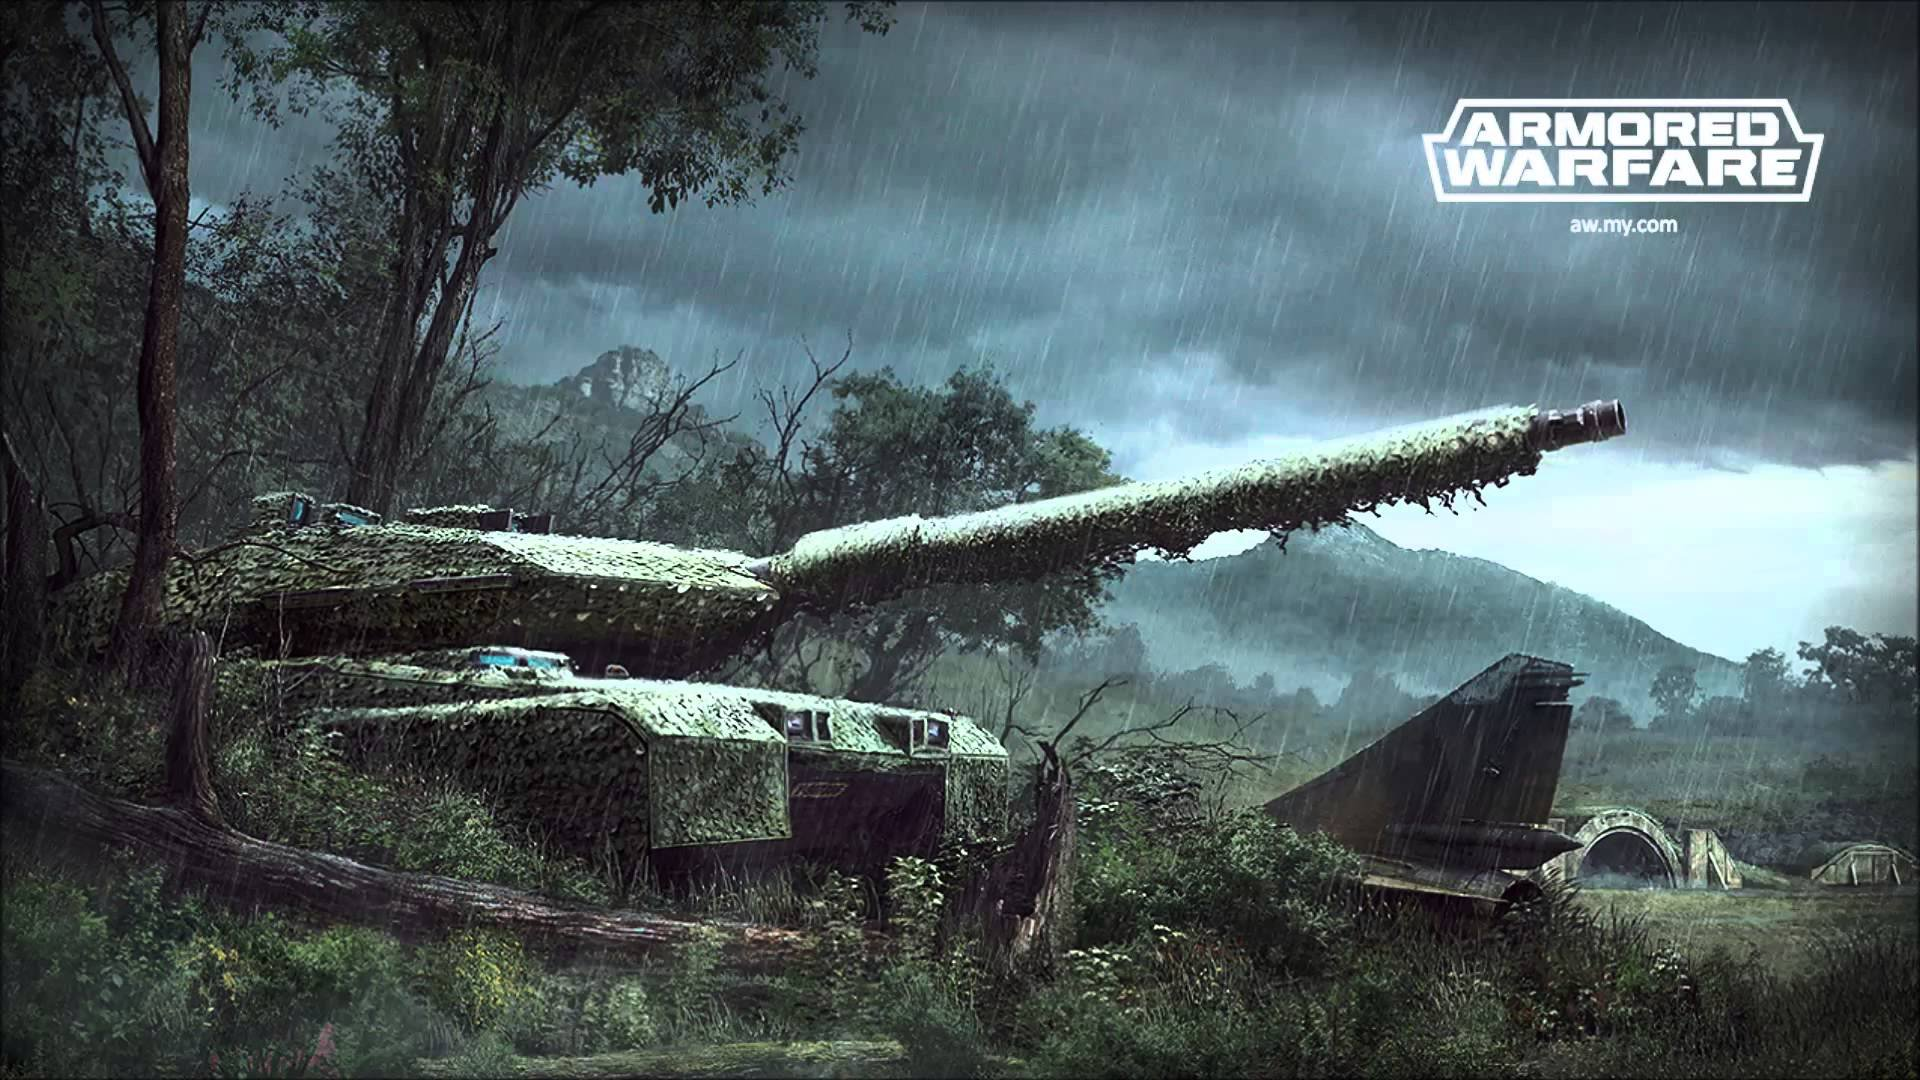 Armored wallpapers wallpaperup armored warfare military tactical tank action armored warfare rpg shooter weapon wallpaper voltagebd Images